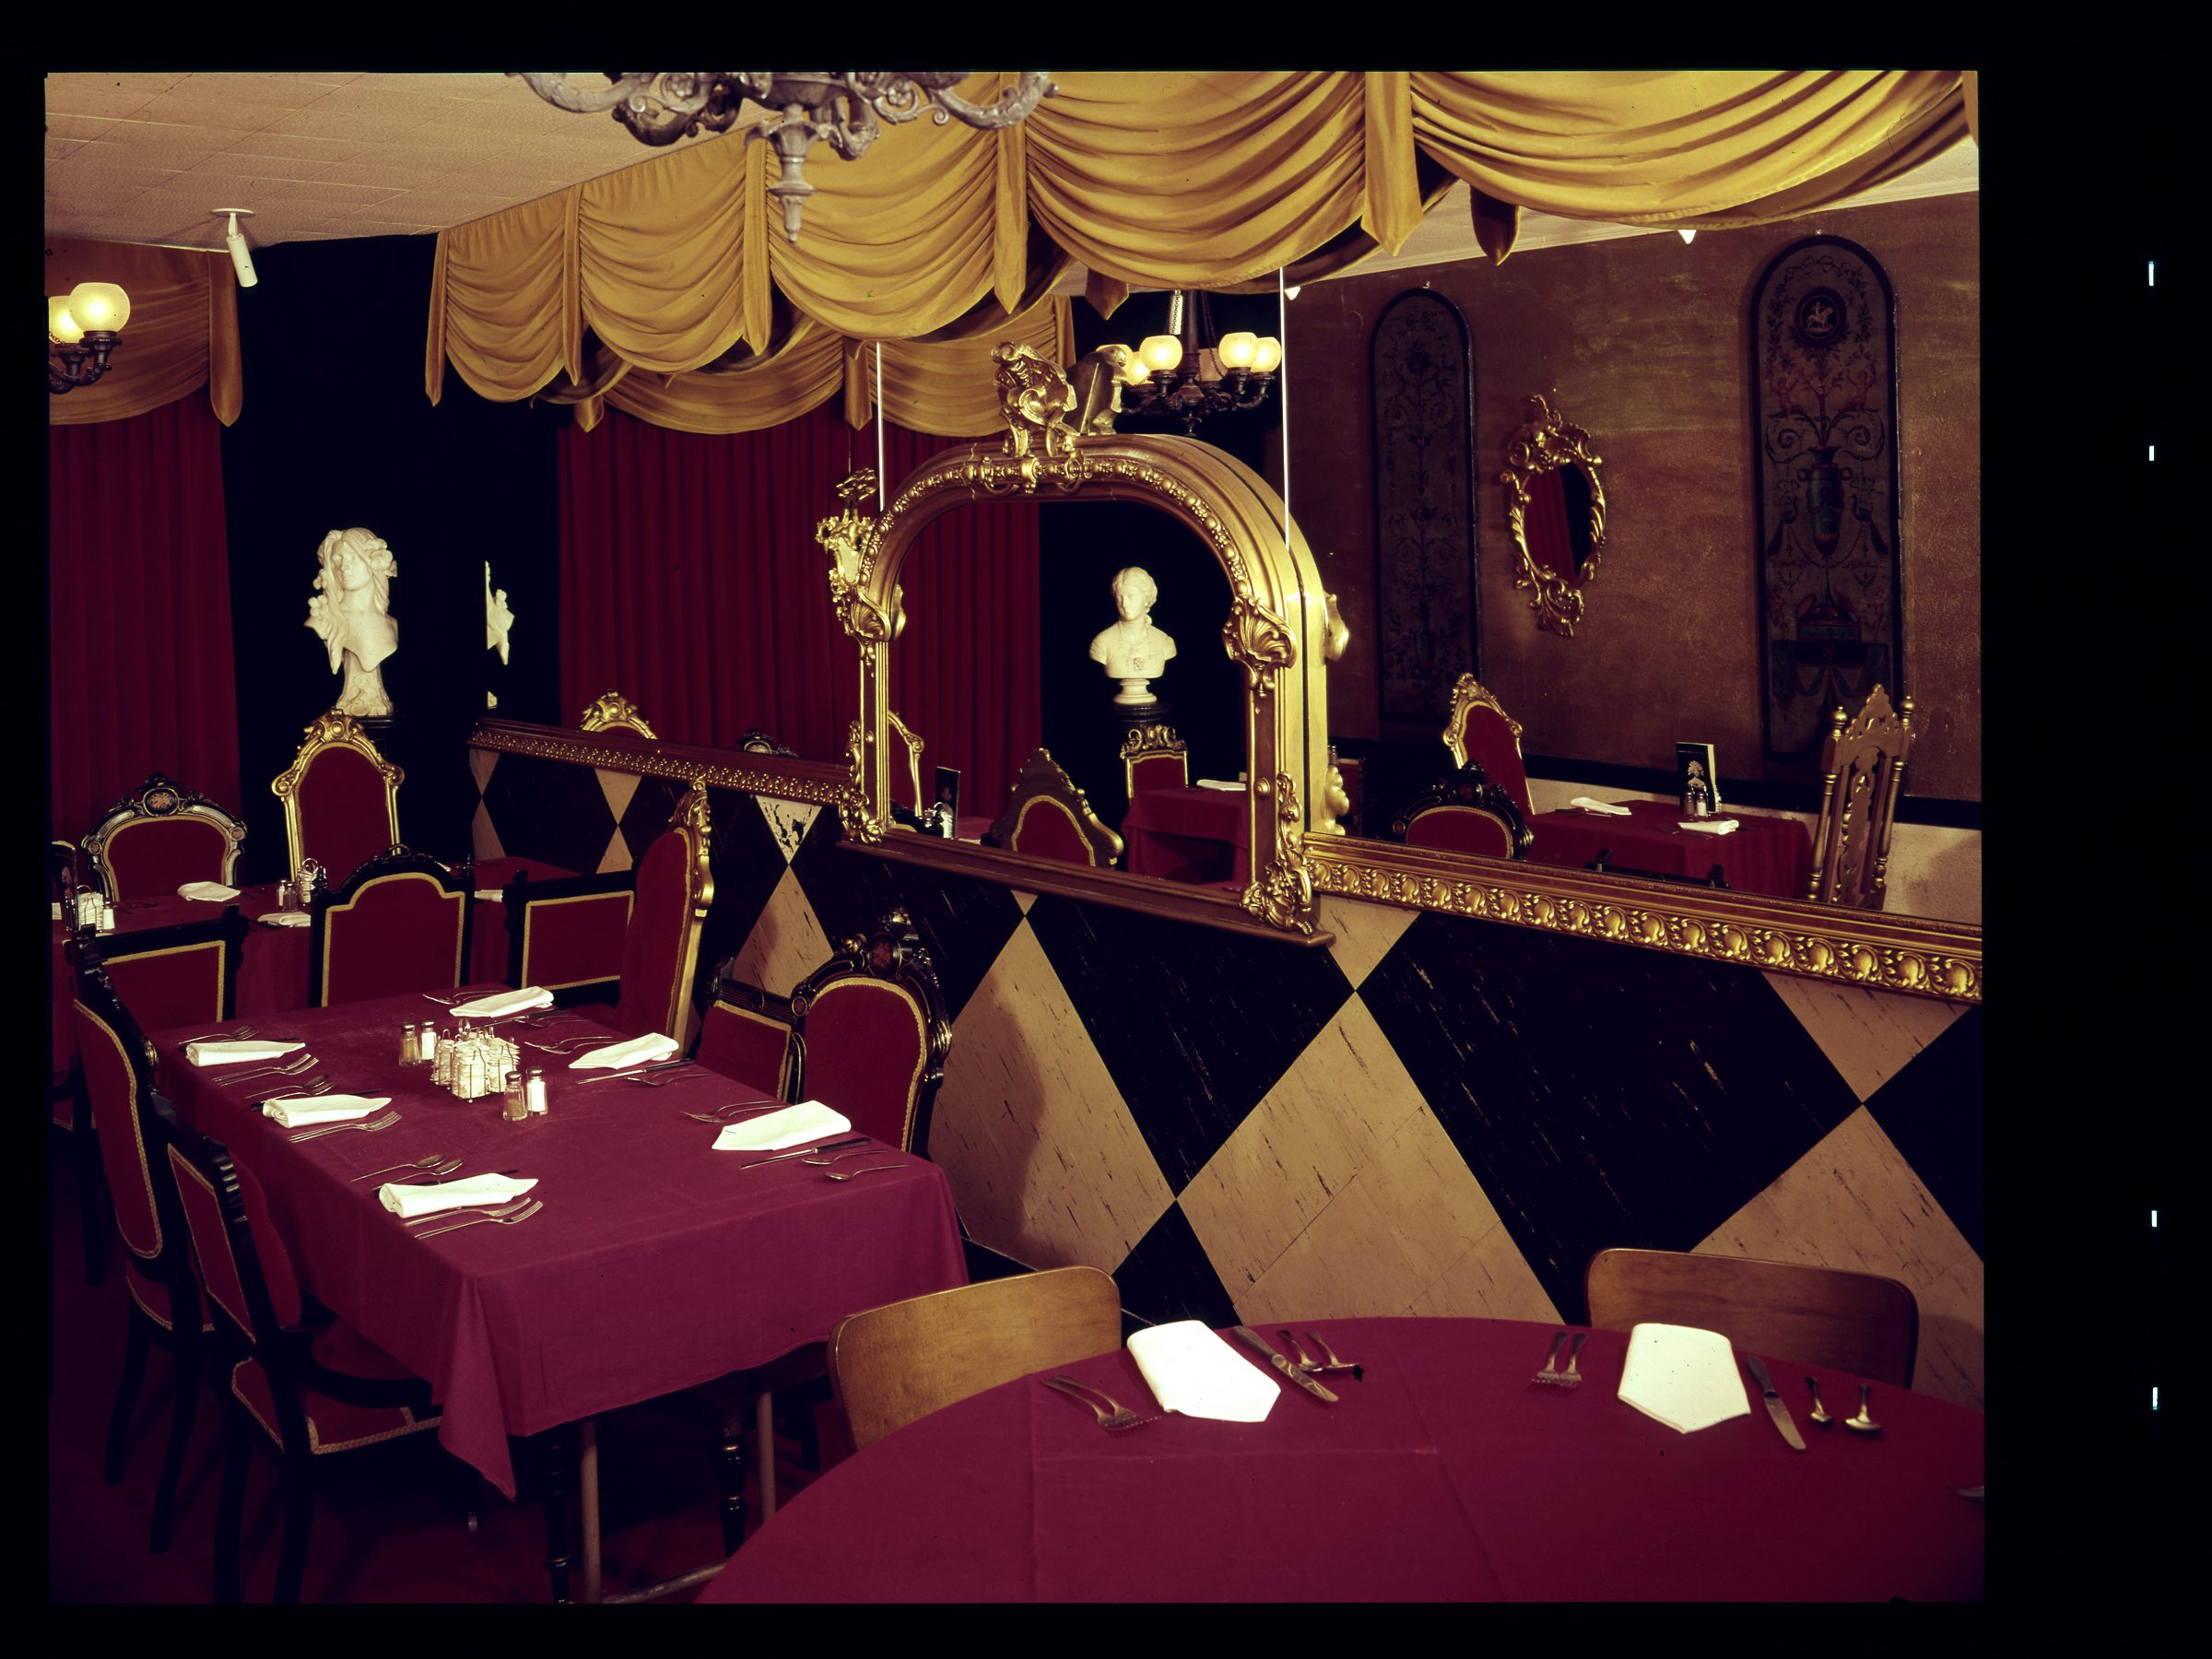 Fancy dining with garnet table cloths and gold drapes